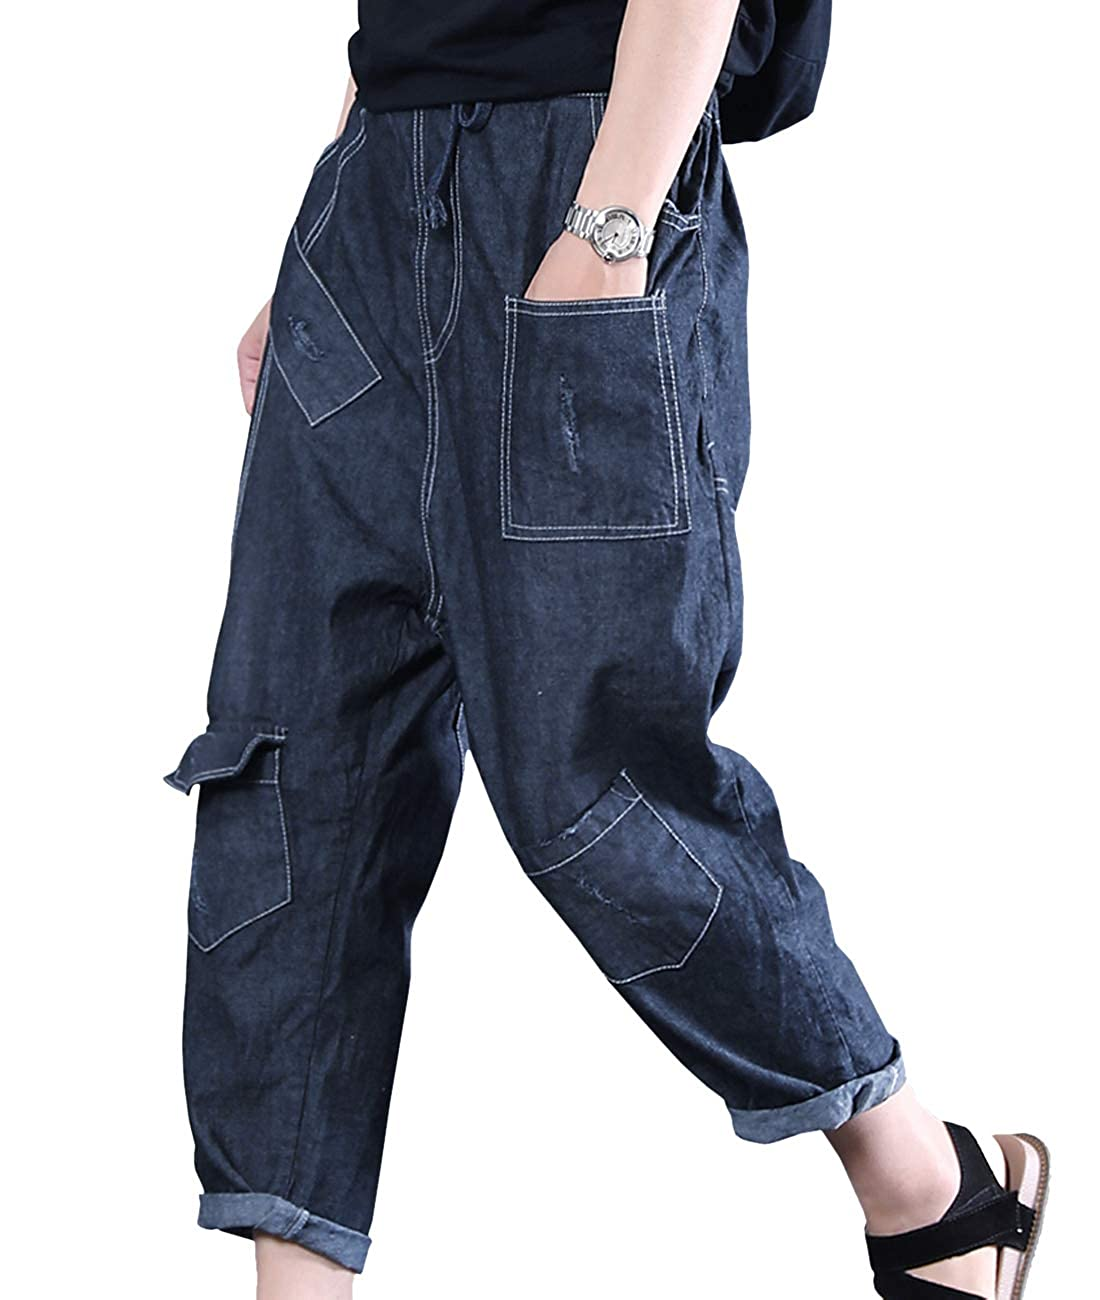 718ed63ccc Features for PN2: Elastic Waist; Low Crotch; Distressed; Stitched; Slit on  Both Cuff; Features for PY1: Elastic with Drawstring; Colorful Painting; ...